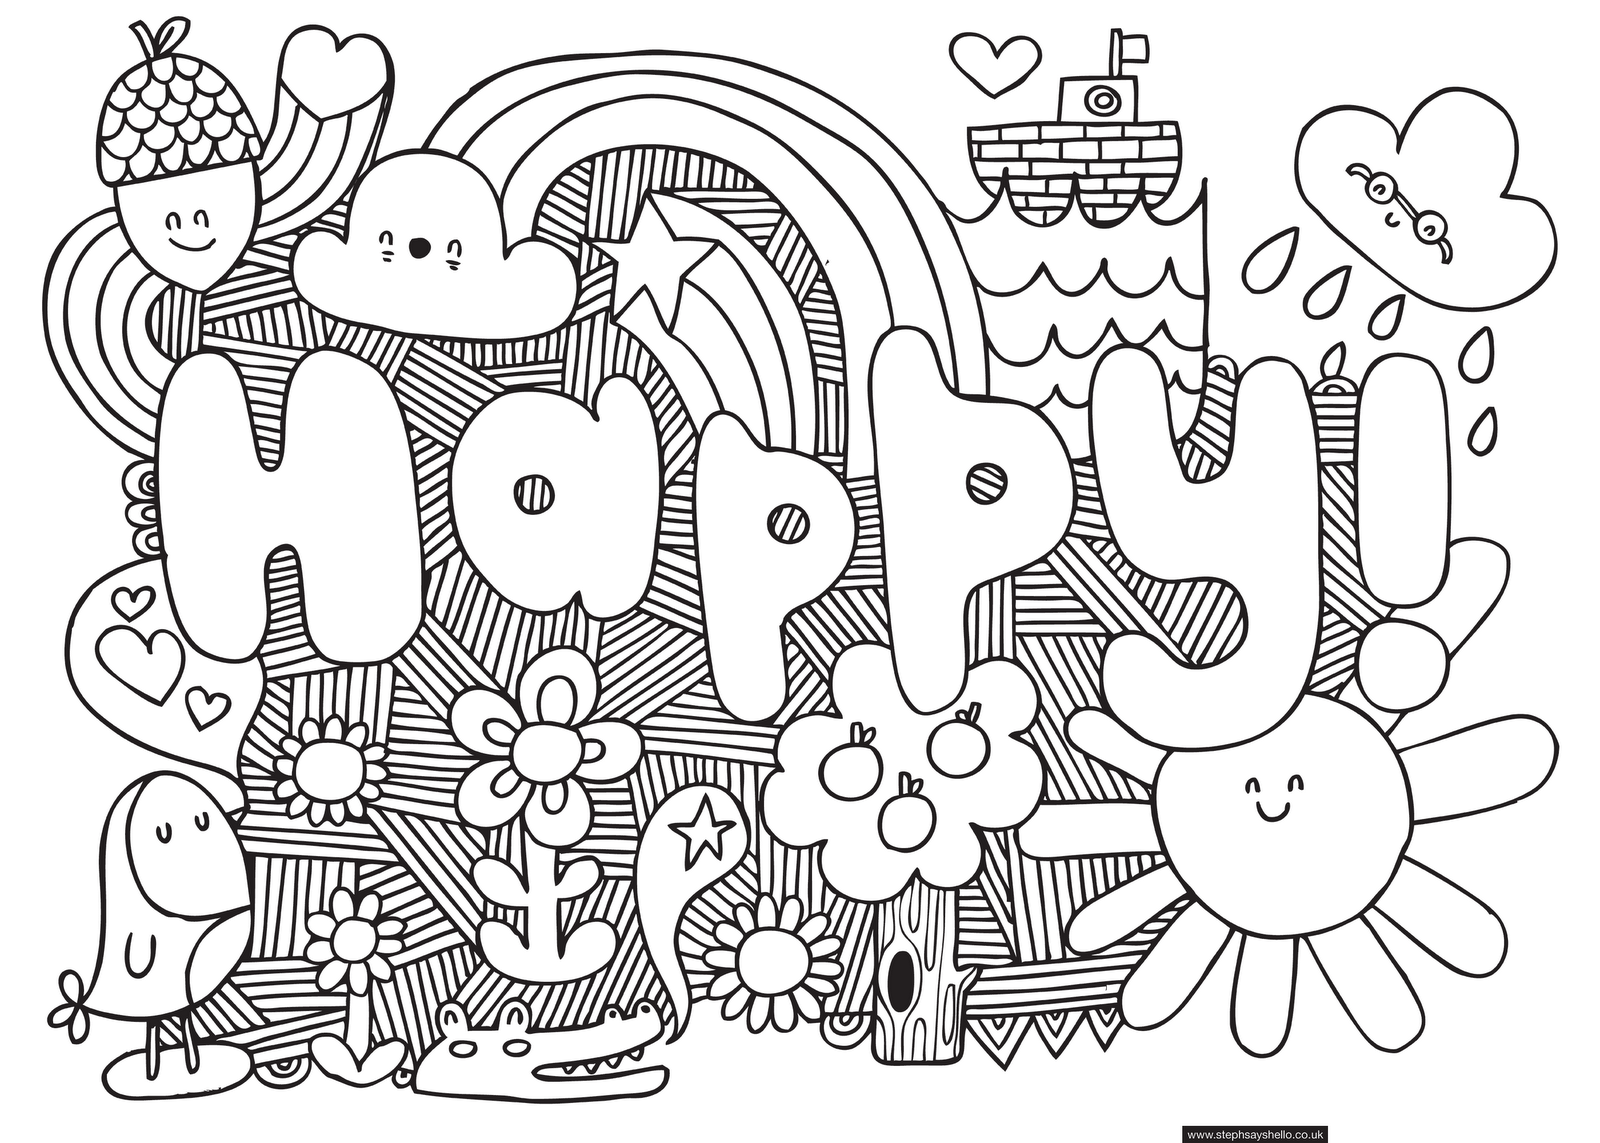 kids coloring pages google search - Colour In For Kids